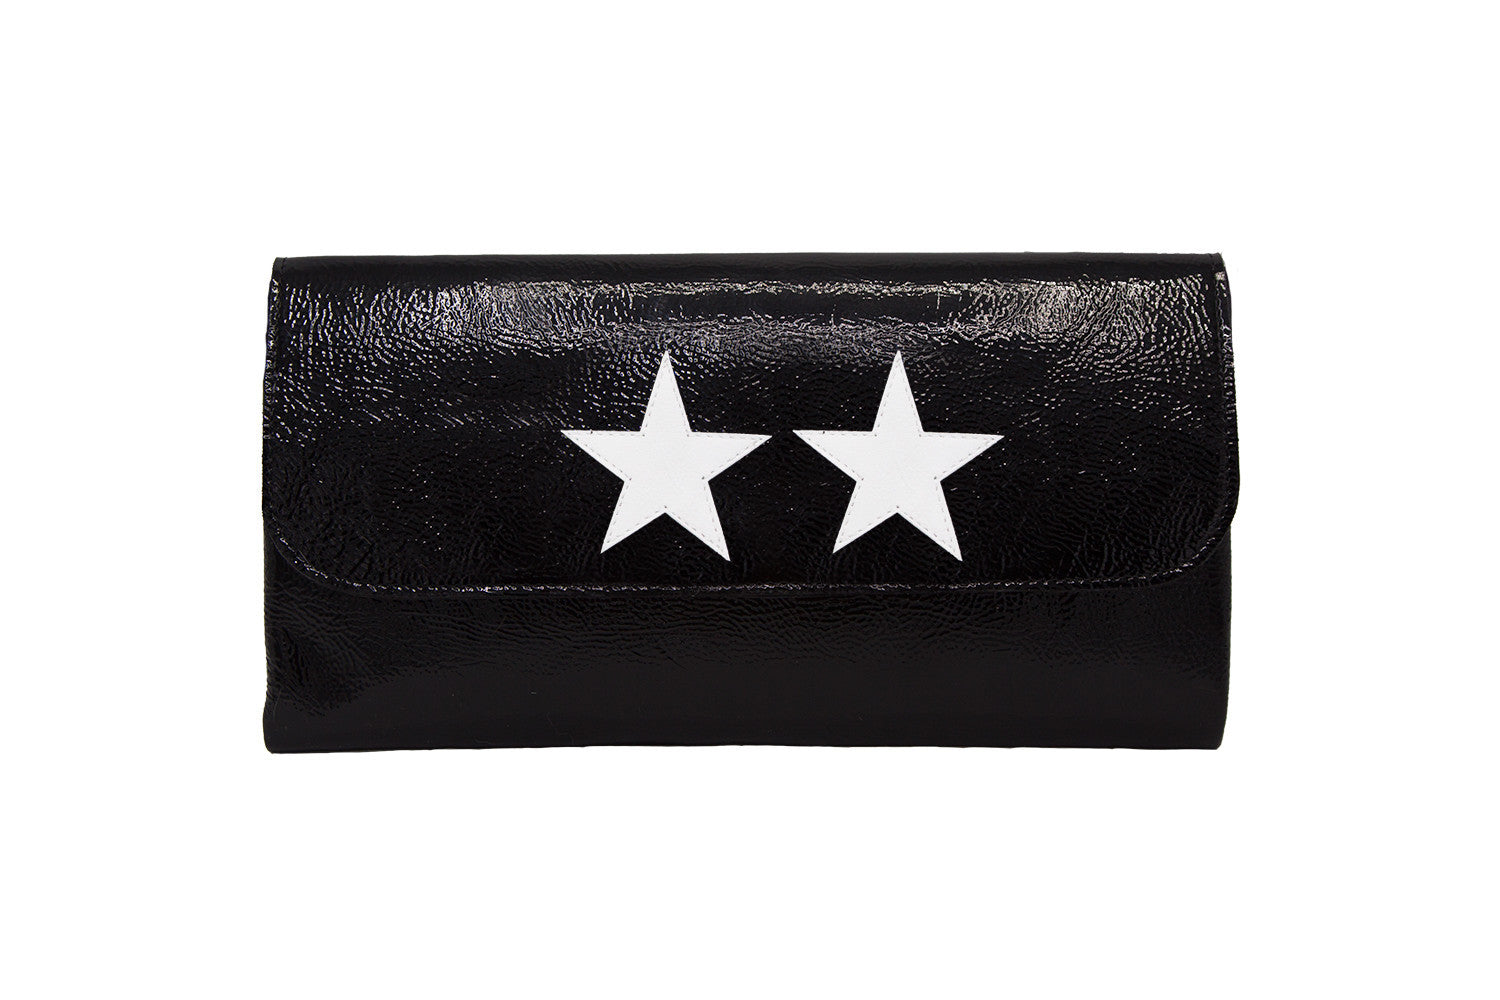 Elle Clutch Cracked Black Patent Leather w/ 2 White Star